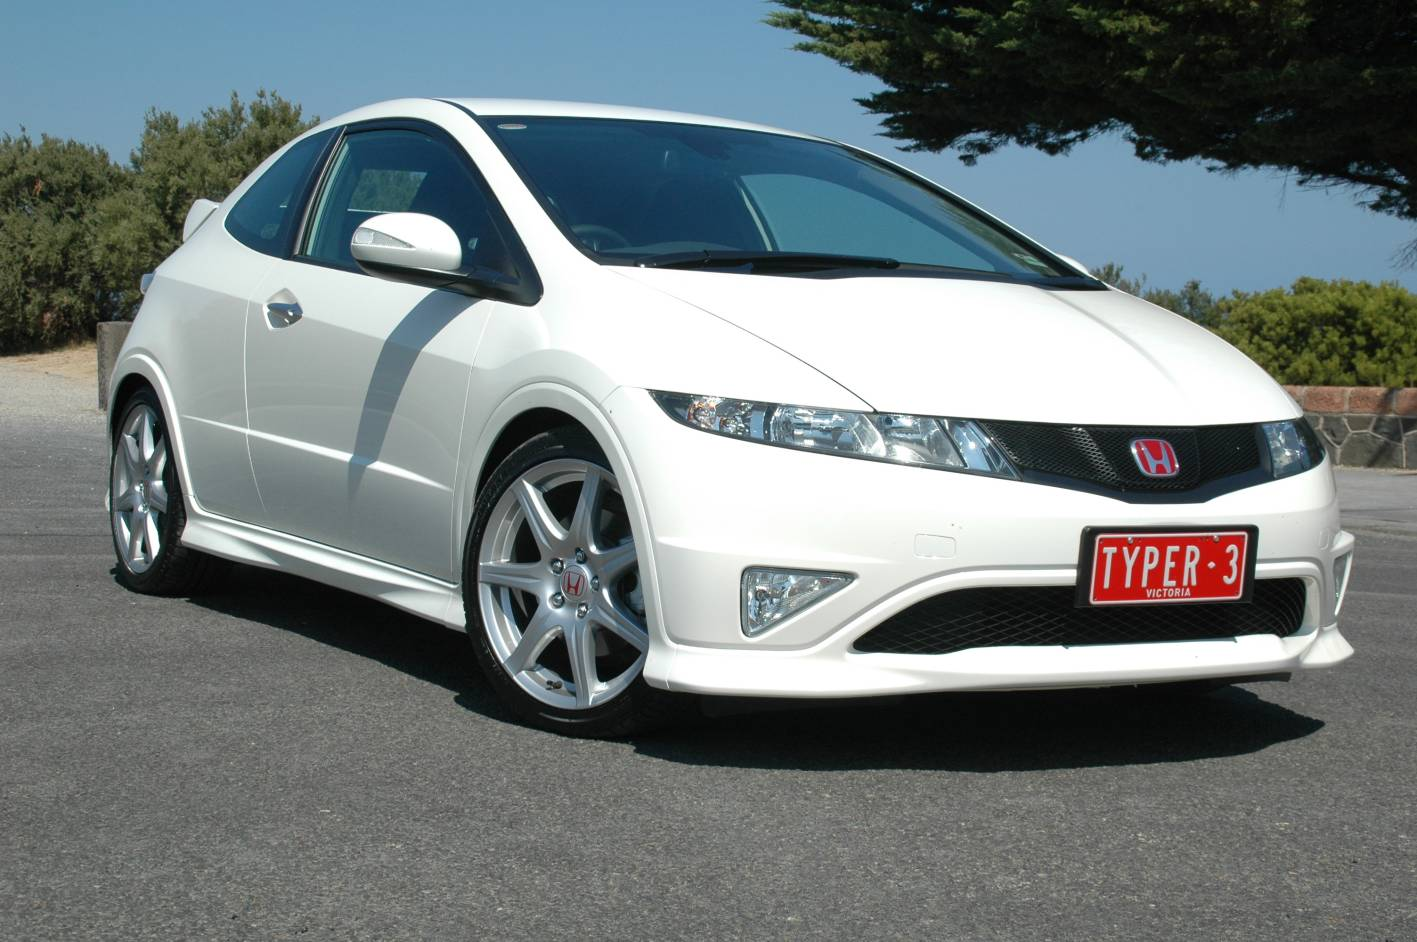 ... honda civic type r concept teased as r rated 2015 honda civic type r